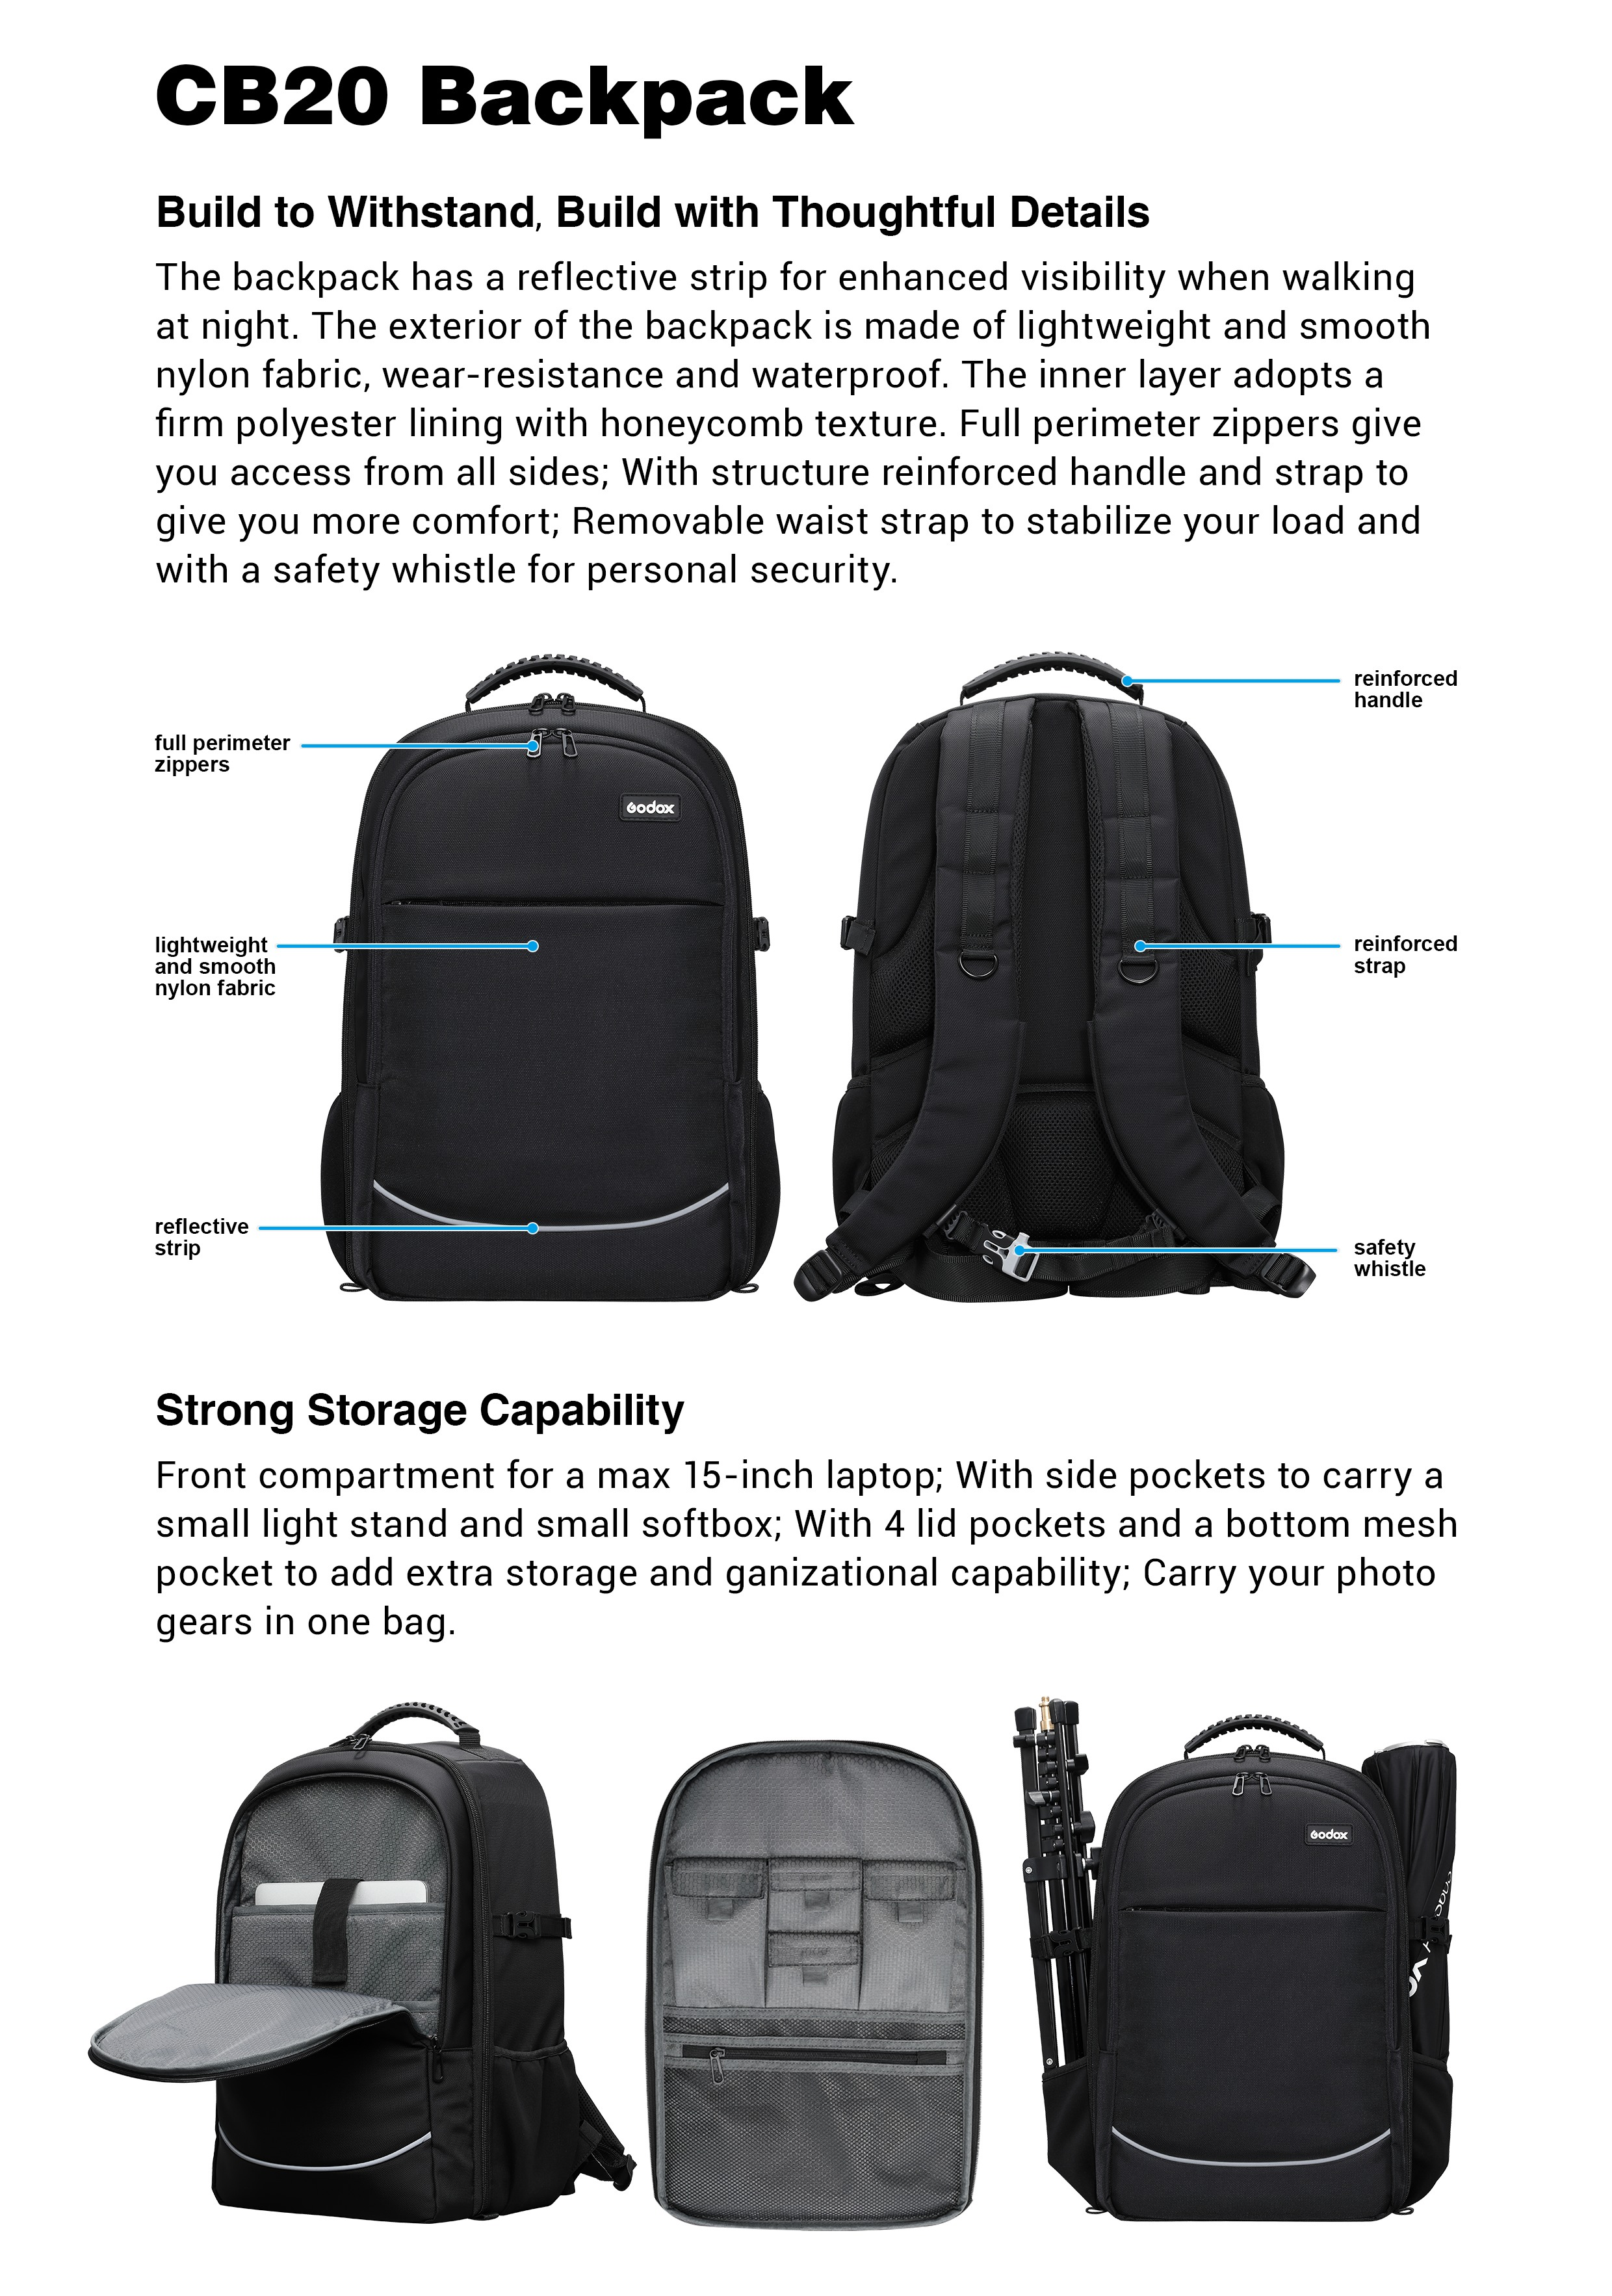 Godox CB20 Backpack. Build to Withstand. Build with Thoughtful Details. Strong Storage Capability.